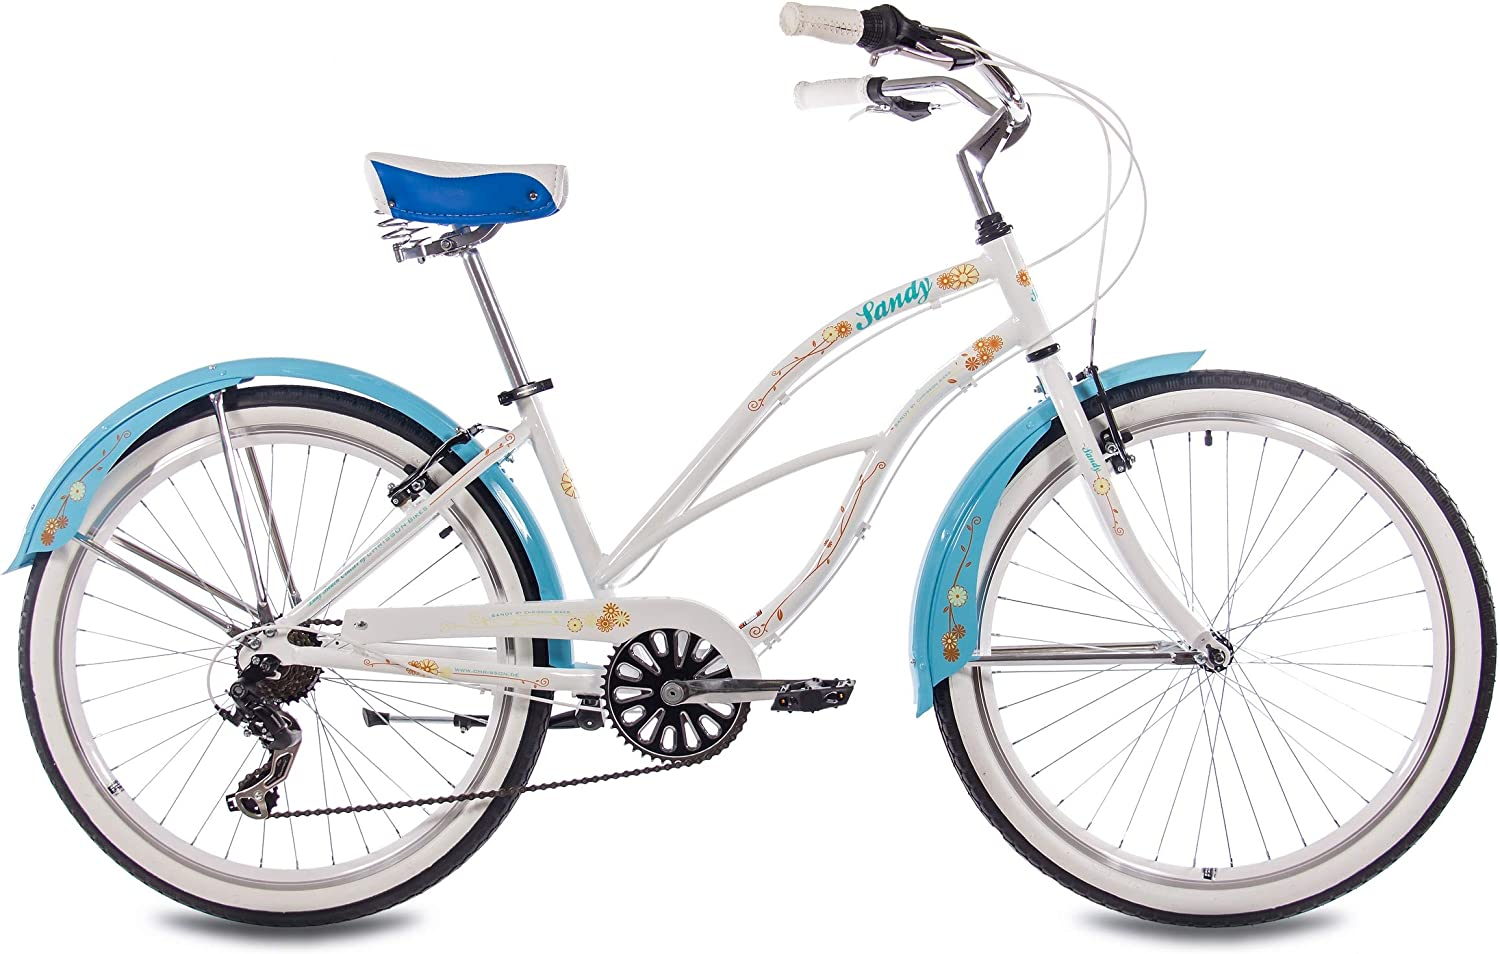 66,04 cm aluminio Beach Cruiser para mujer CHRISSON SANDY con 6 ...